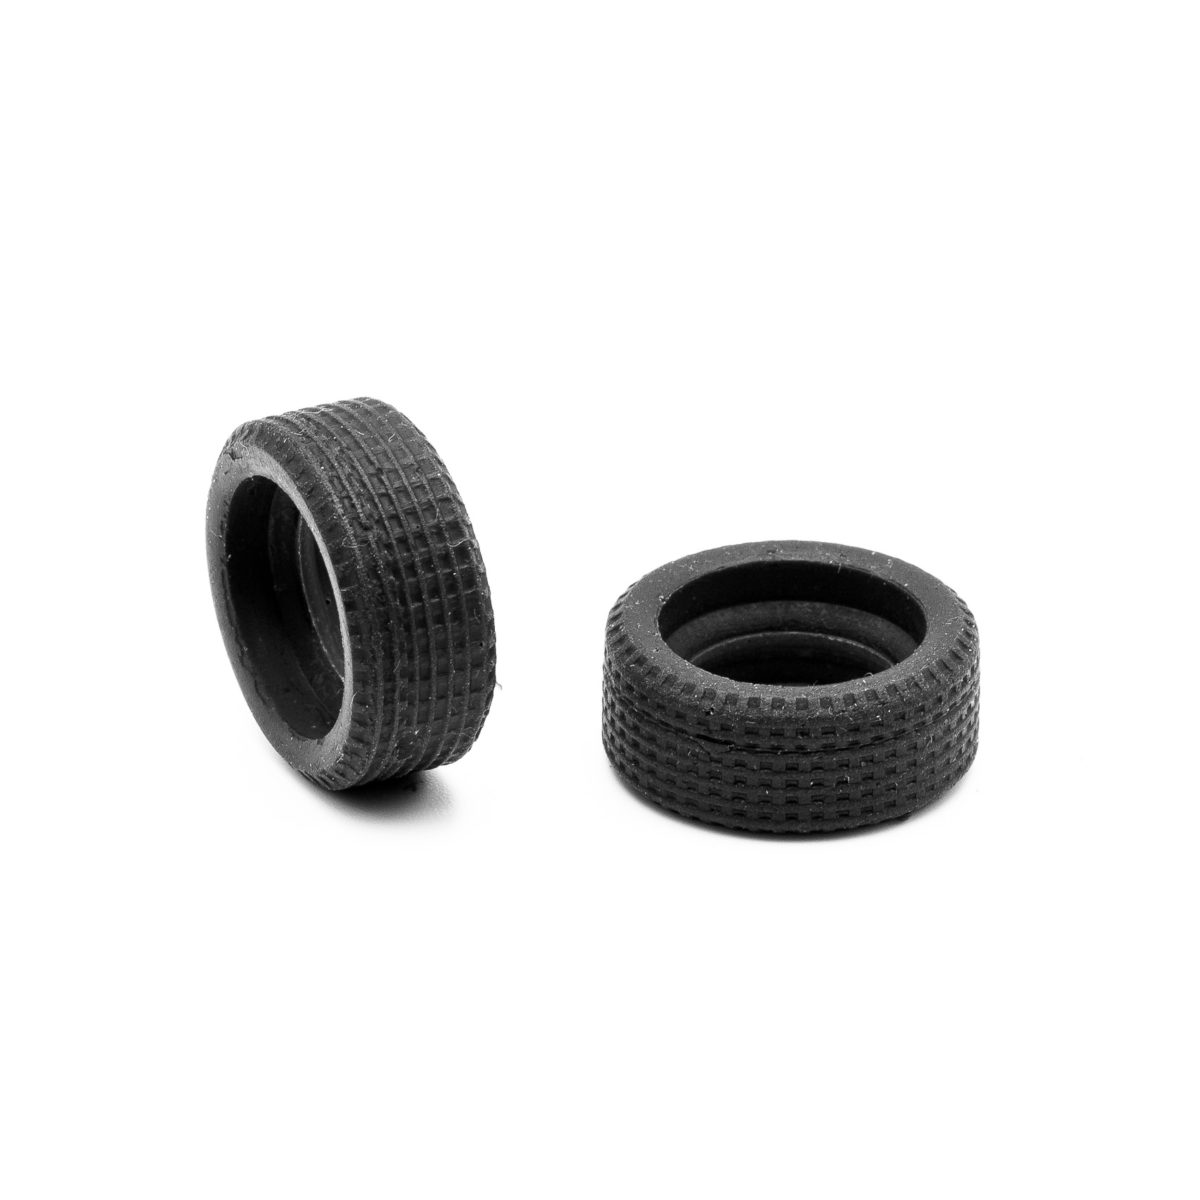 Rear Slot Car Tires for F1 Fixed Wheels 60s Policar 1:32